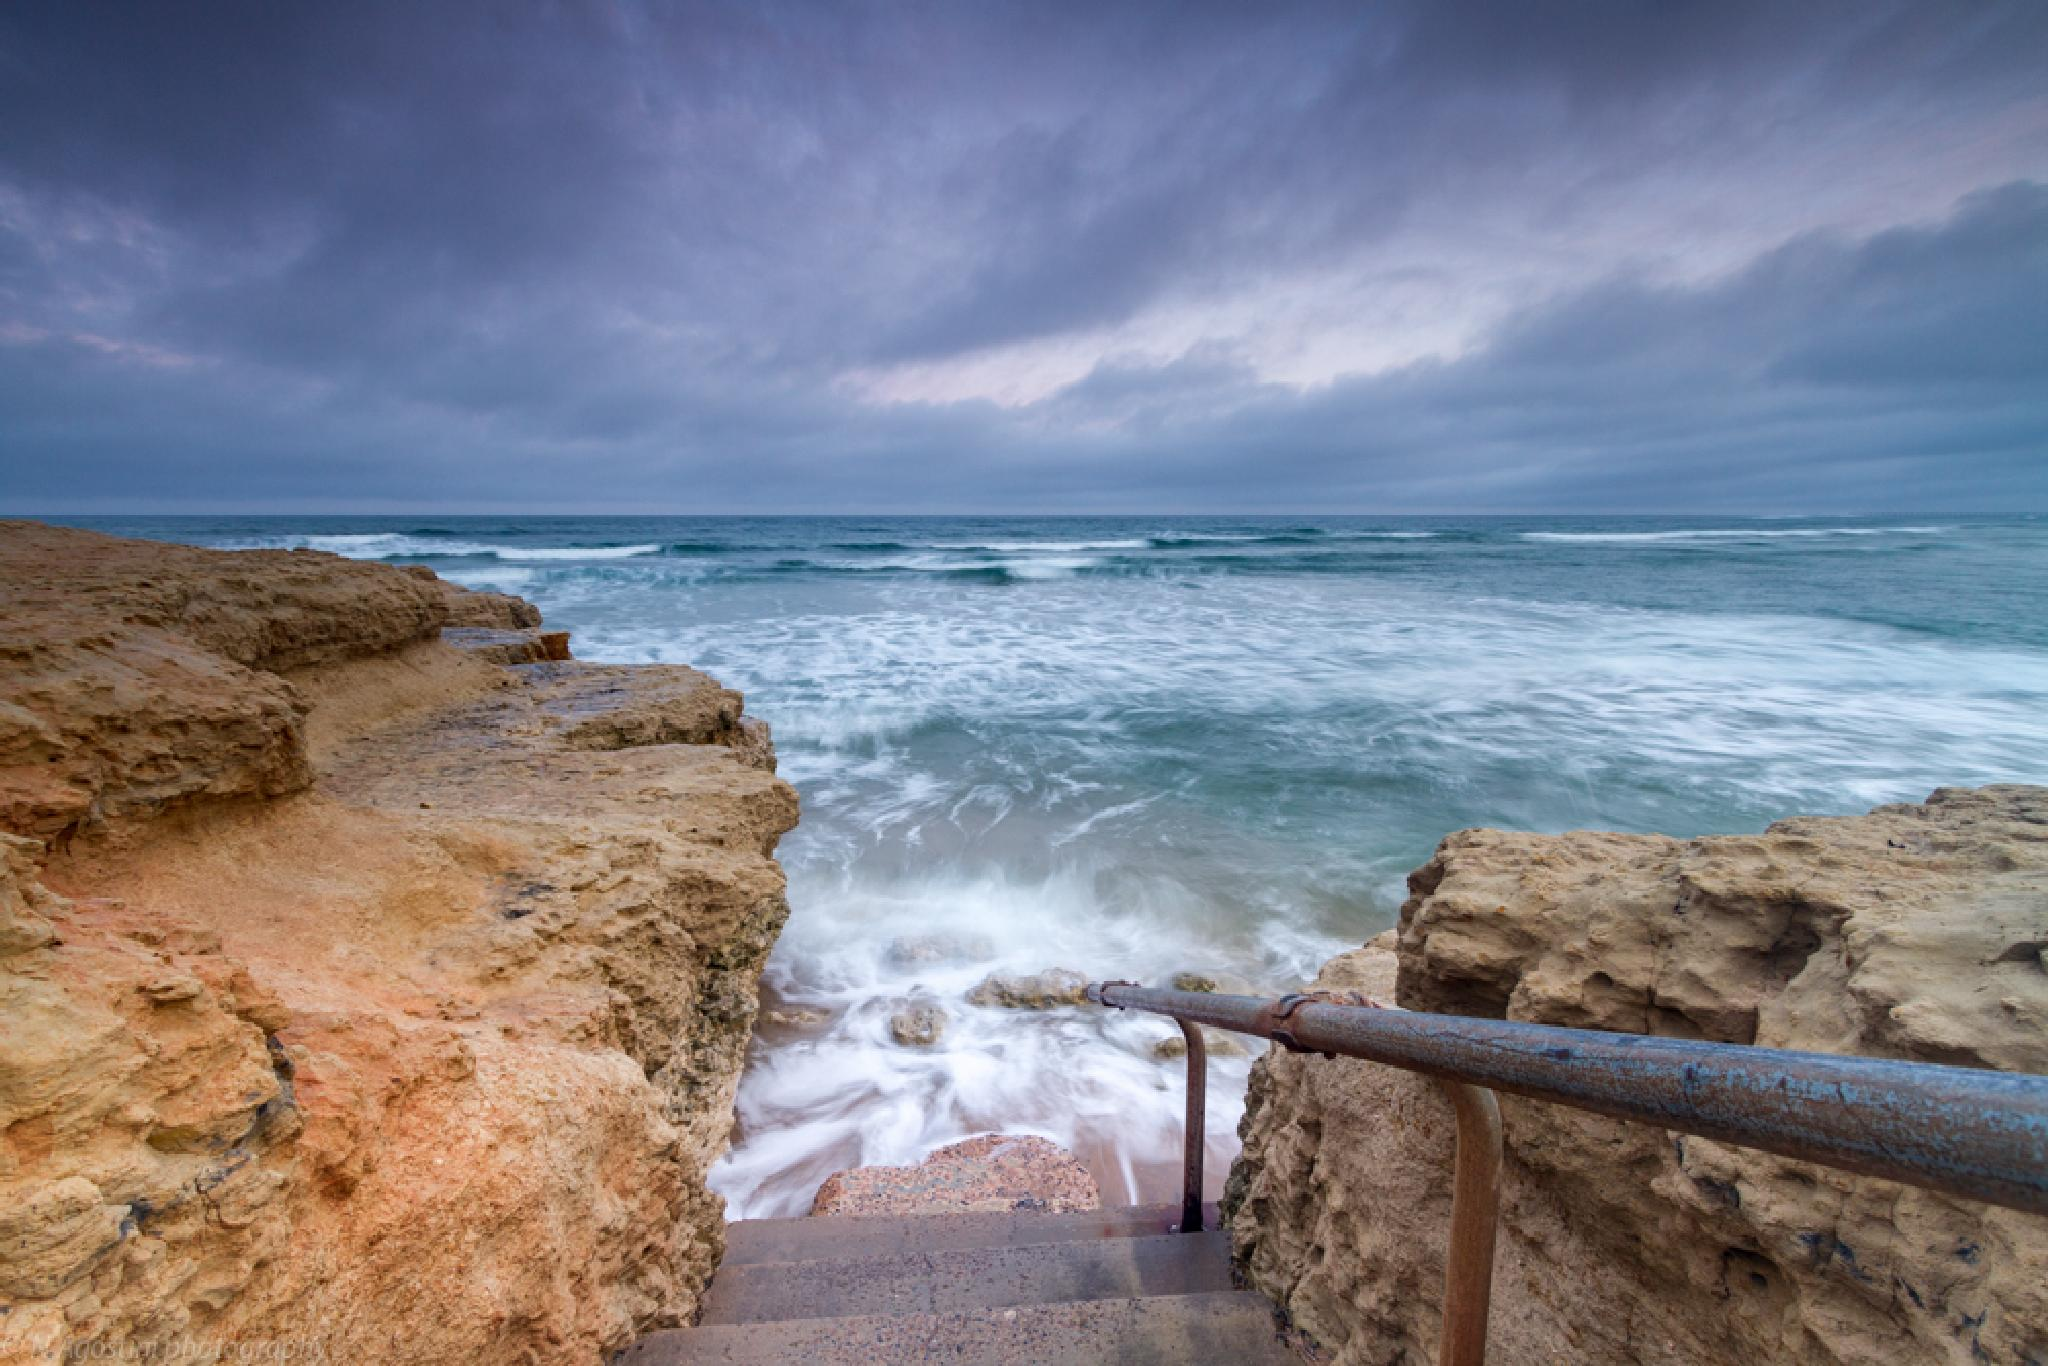 Steps in water by Nathan Agostini